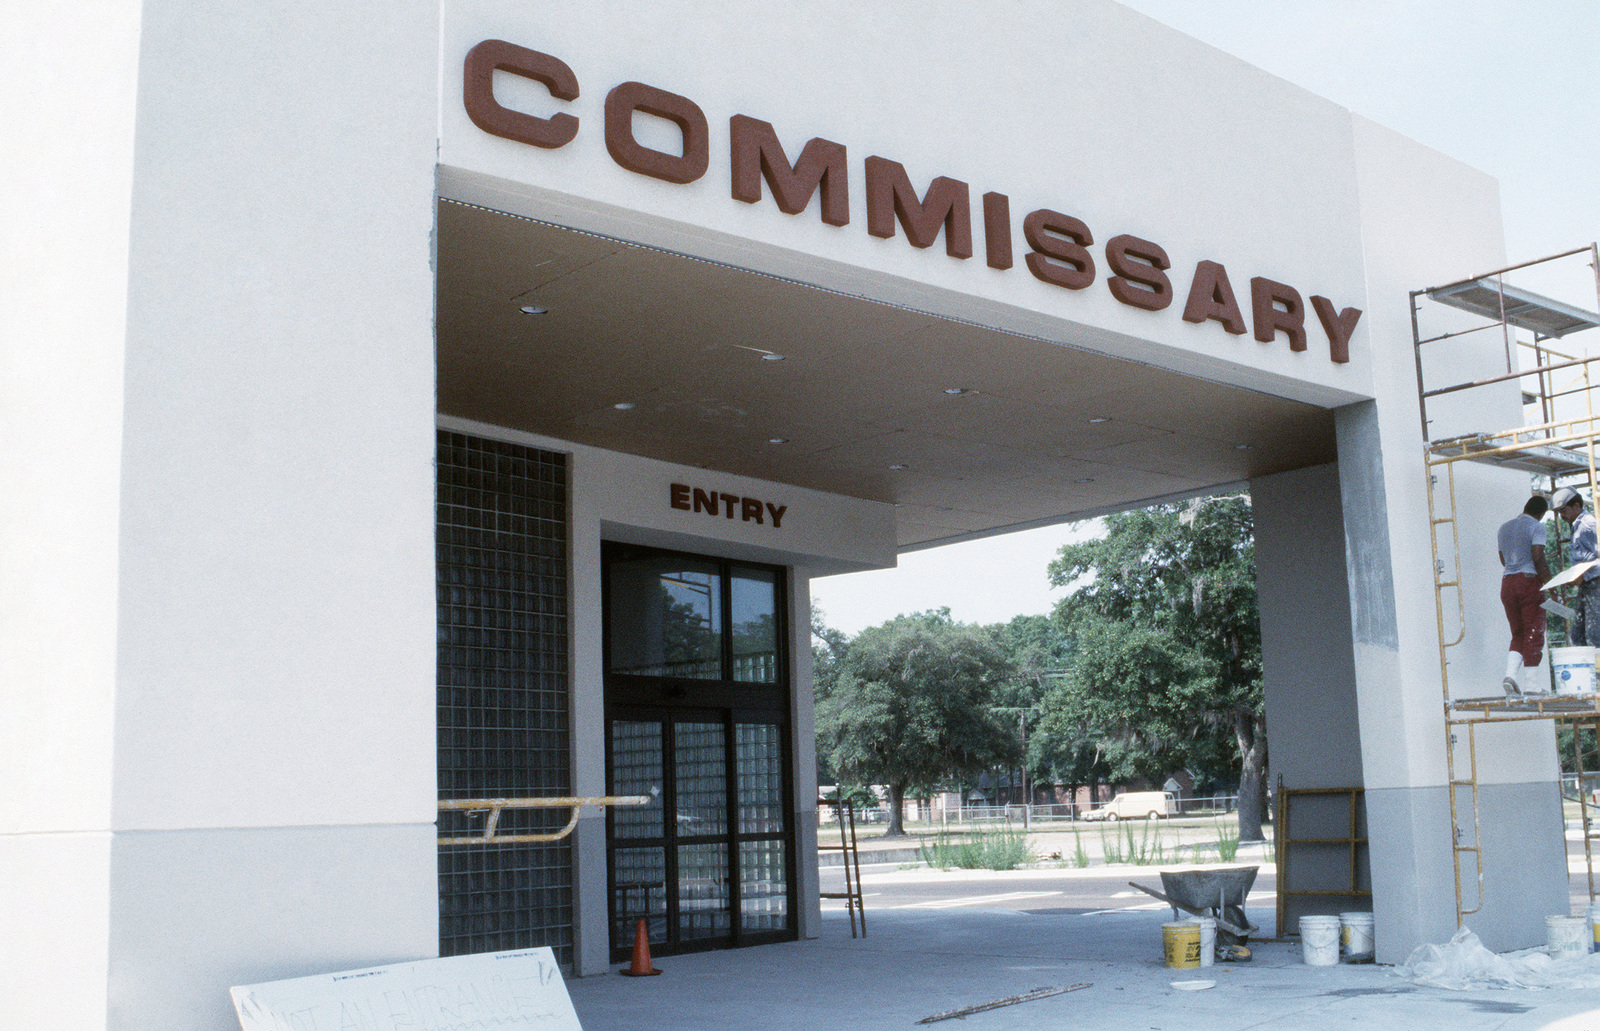 An exterior view of the commissary building under construction